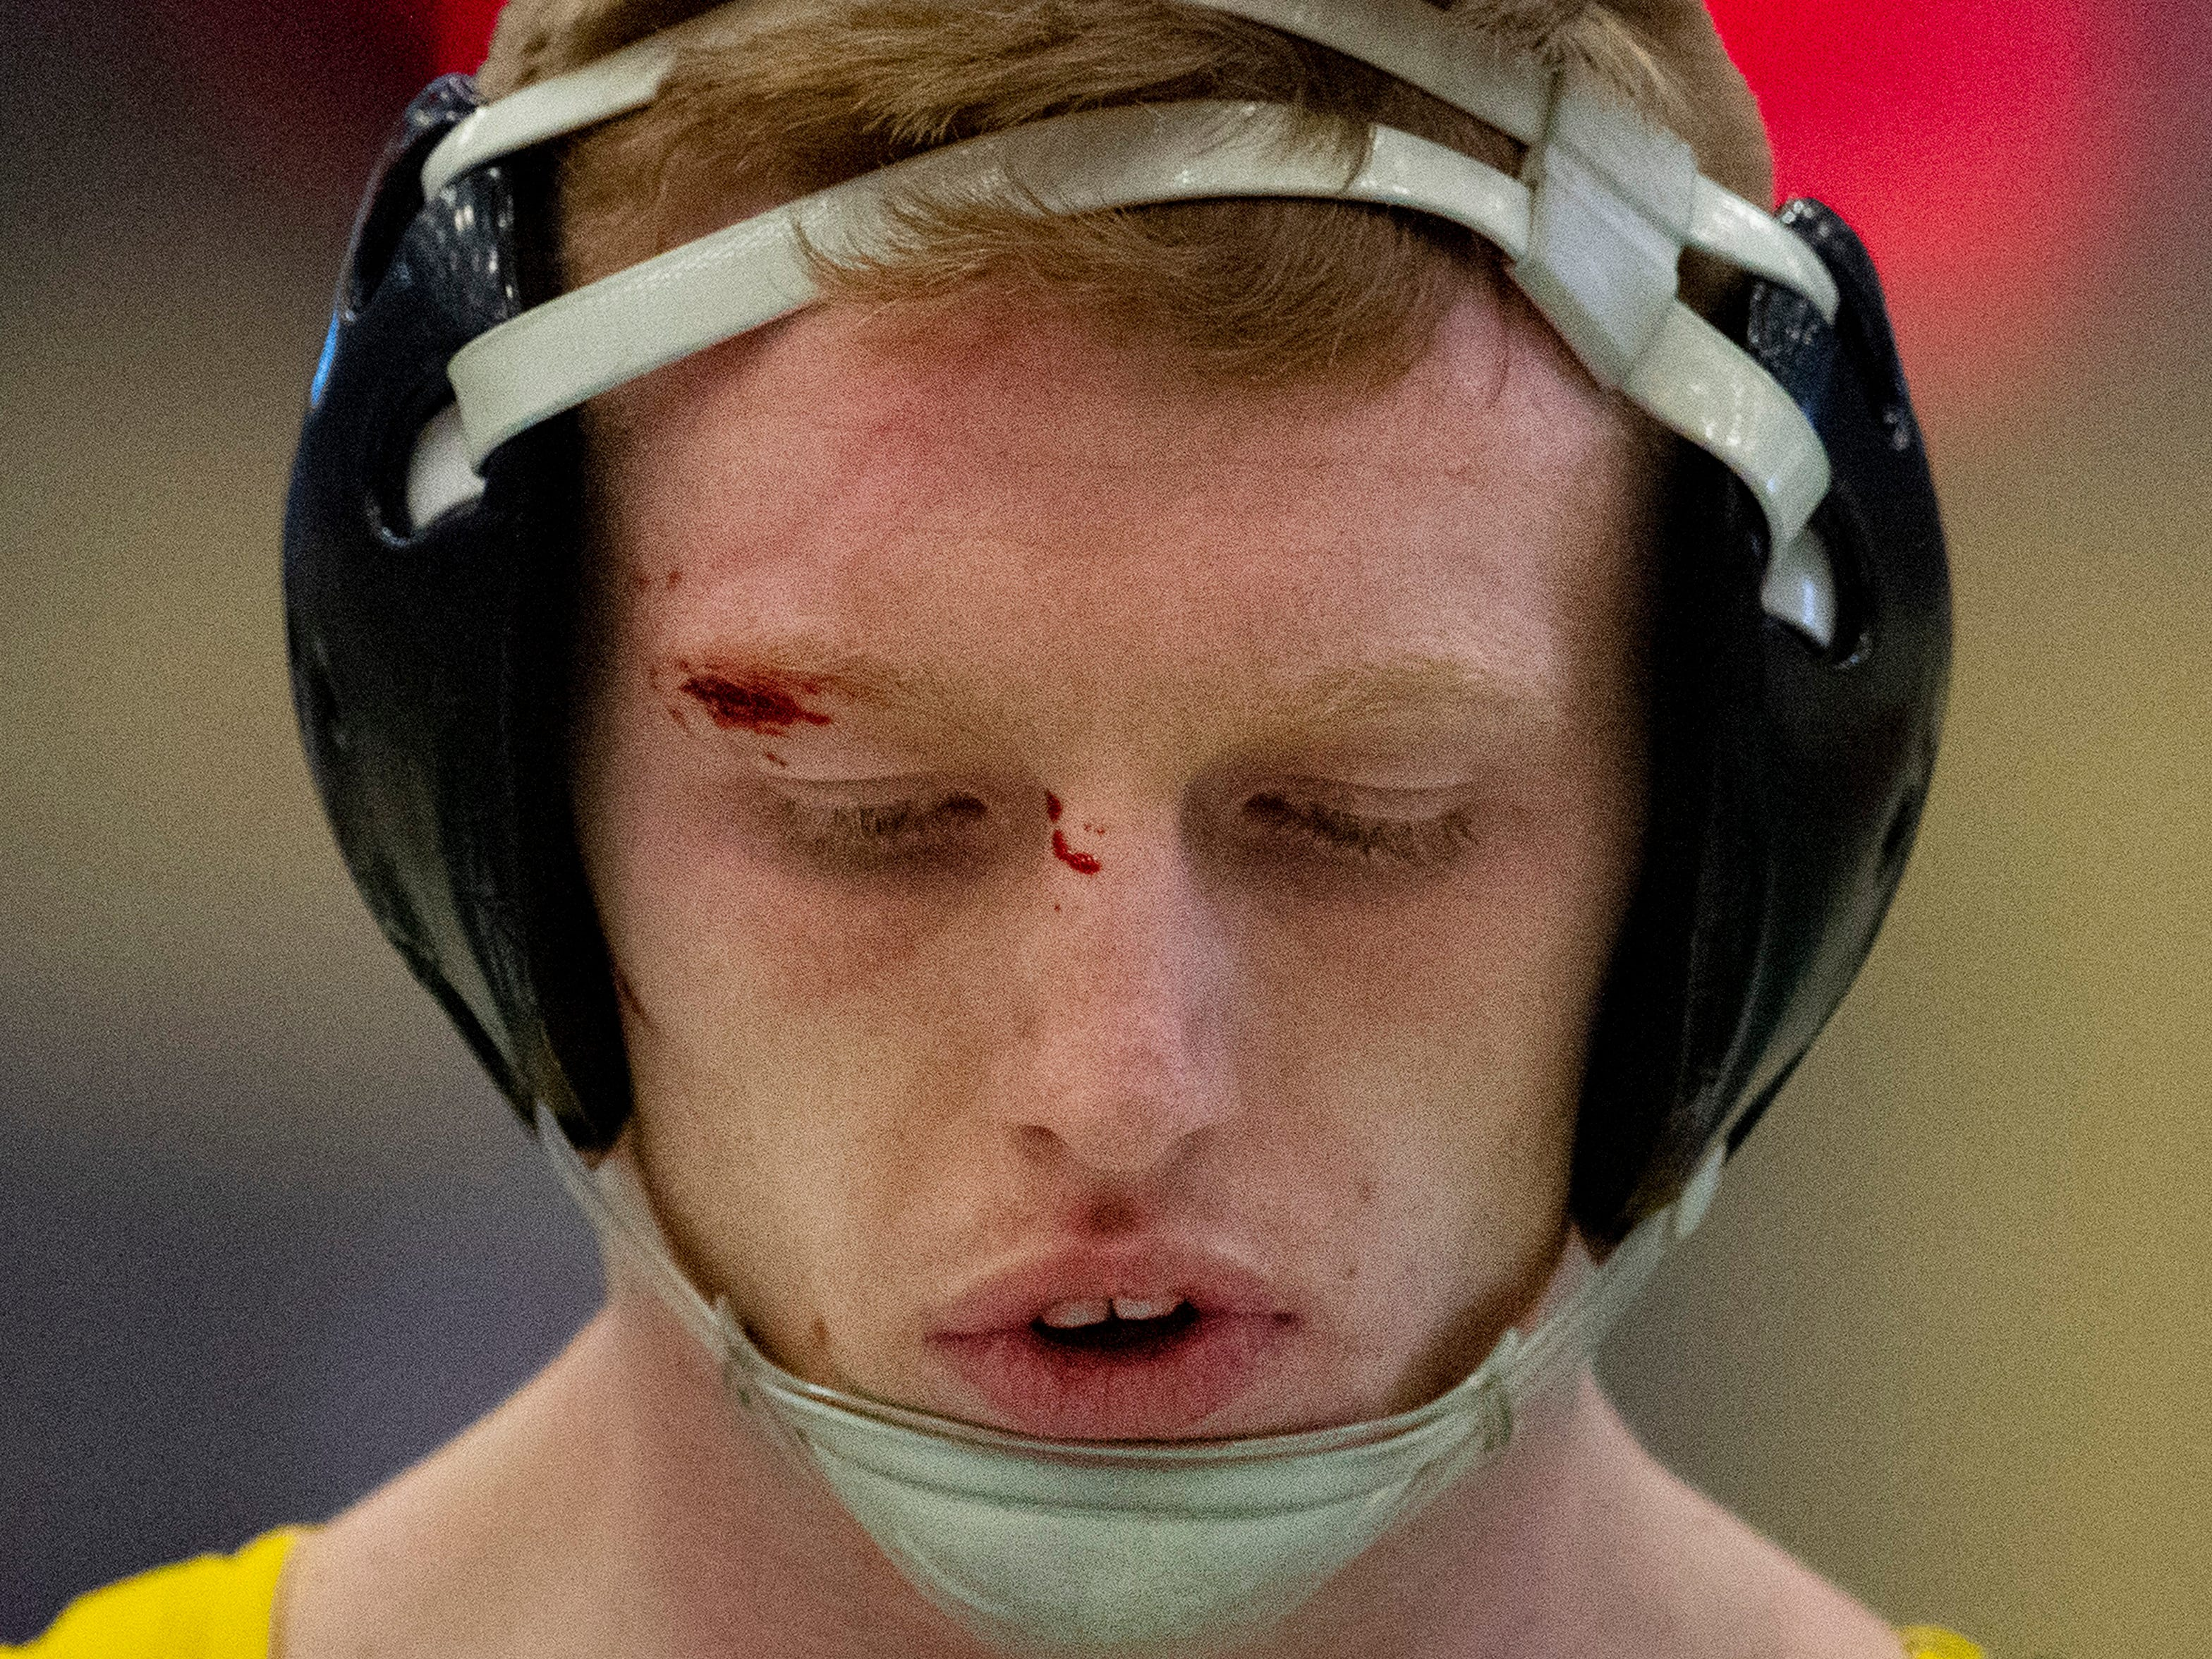 Johnson Central's Joe Jackson waits for medical attention after a cut was opened up near his eyebrow while facing Union County's Micah Ervin in the 170-pound semifinals at the KHSAA State Wrestling Championships at the Alltech Arena in Lexington, Ky., Saturday afternoon. The match continued and Ervin came out on top in the match to advance to the finals.